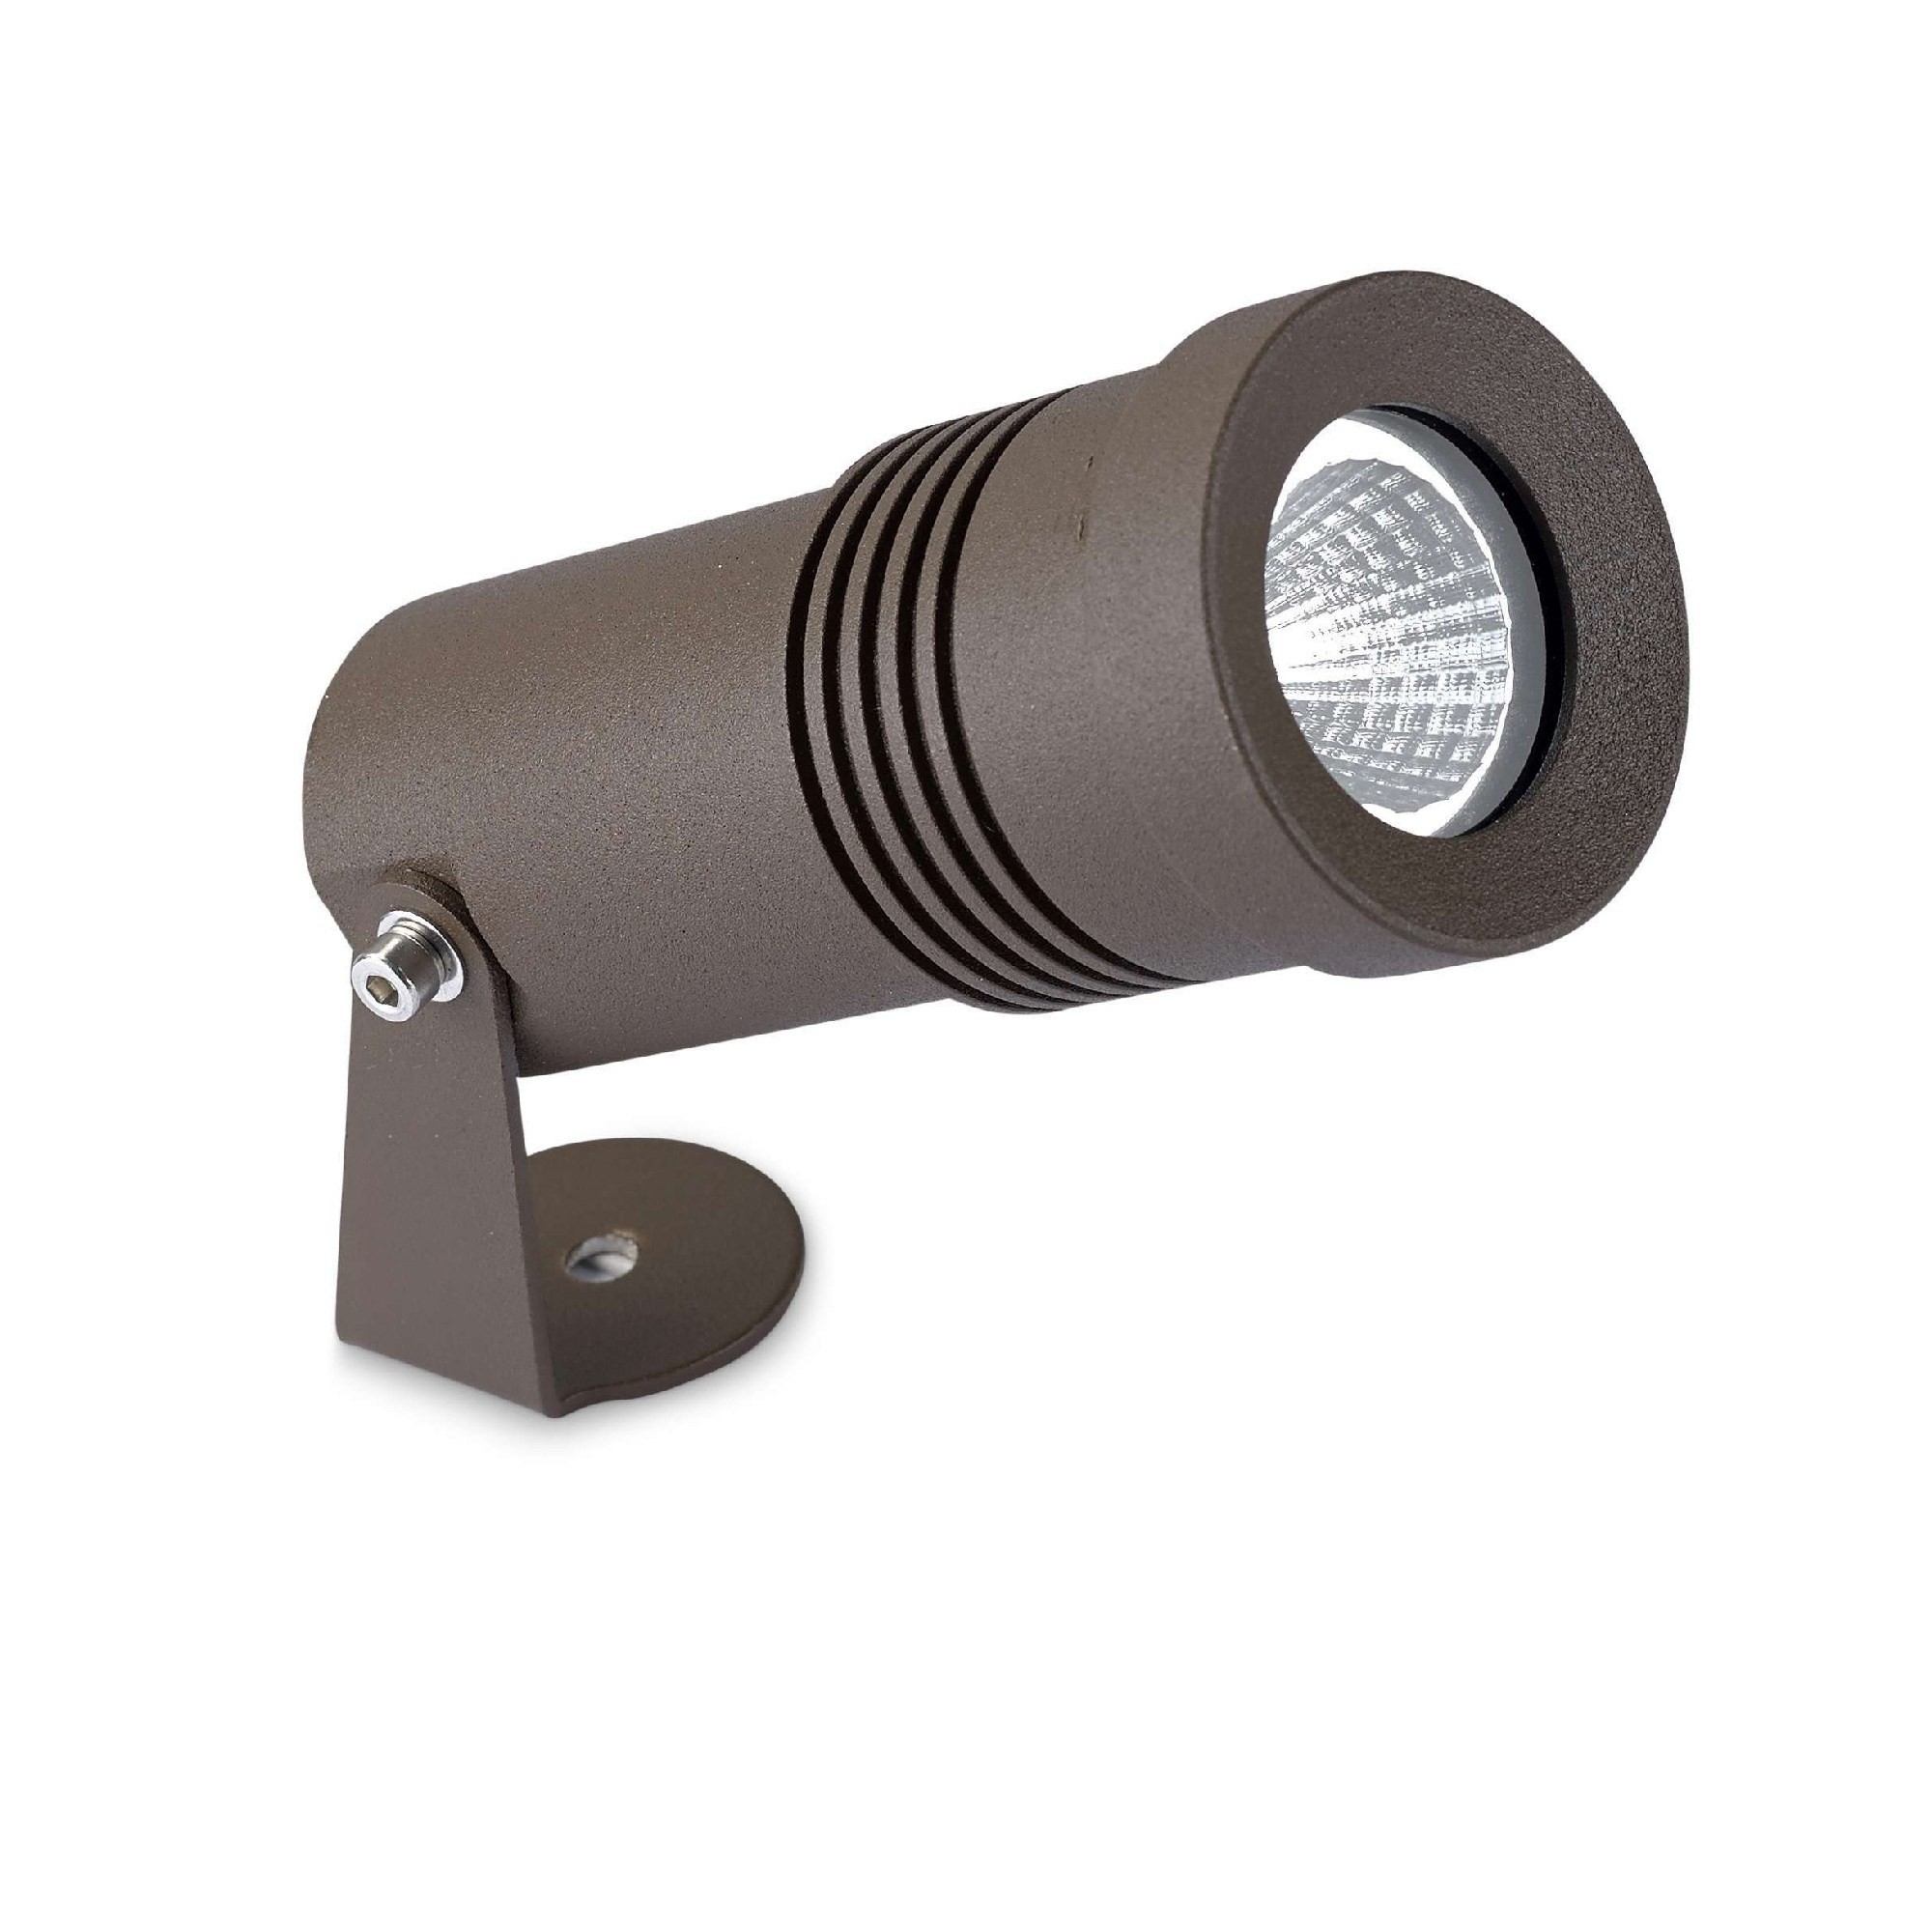 Leds C4 OUTDOOR 05 9881 J6 CLV1 LED lampen